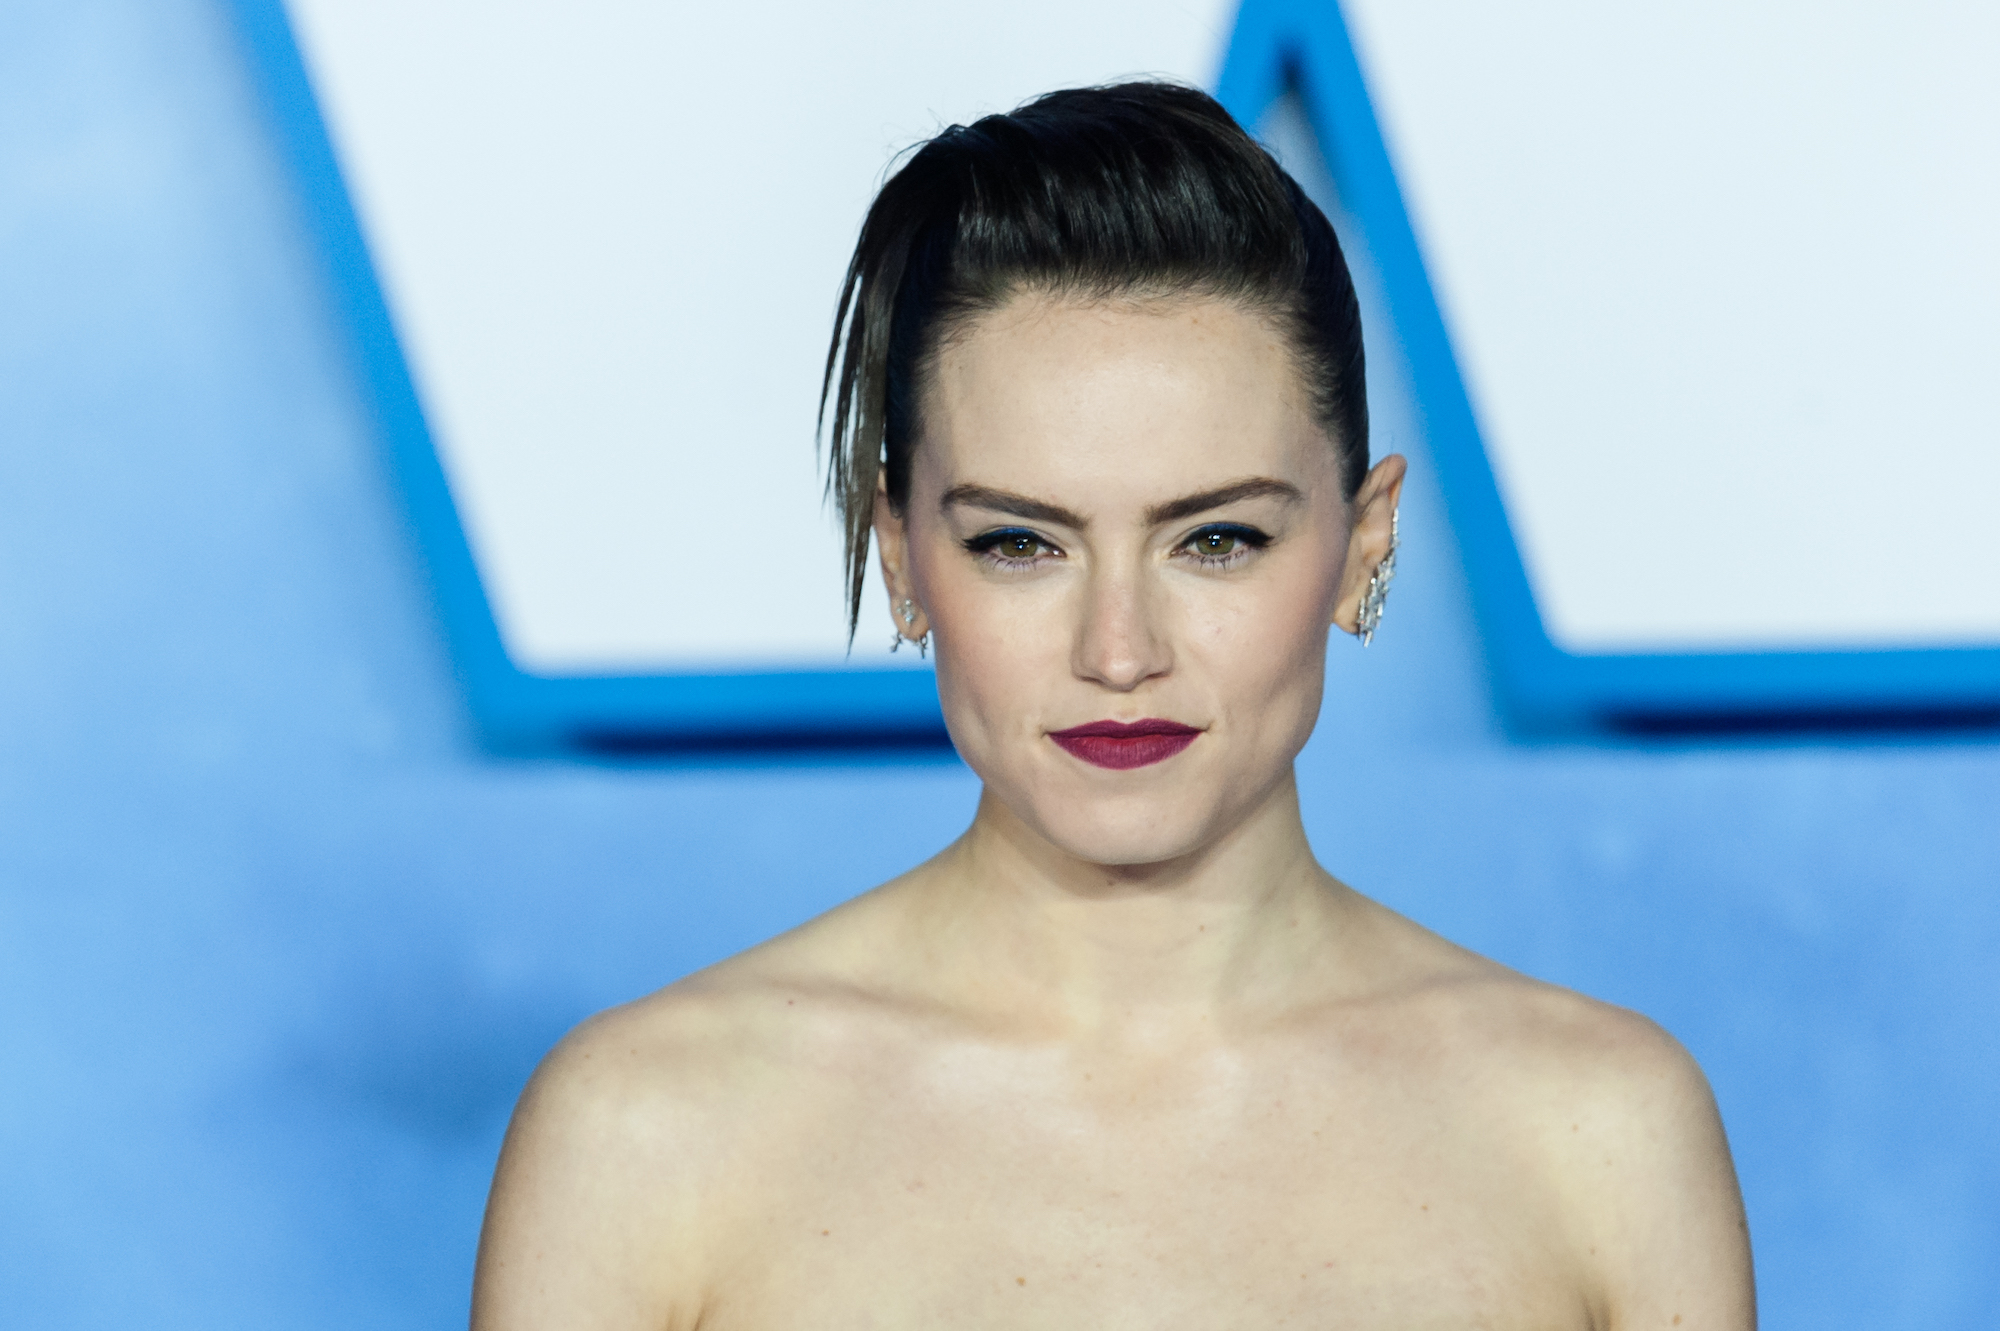 Daisy Ridley Revealed That Rey Was Almost a Kenobi, Said She Wasnt Sure of Her Star Wars